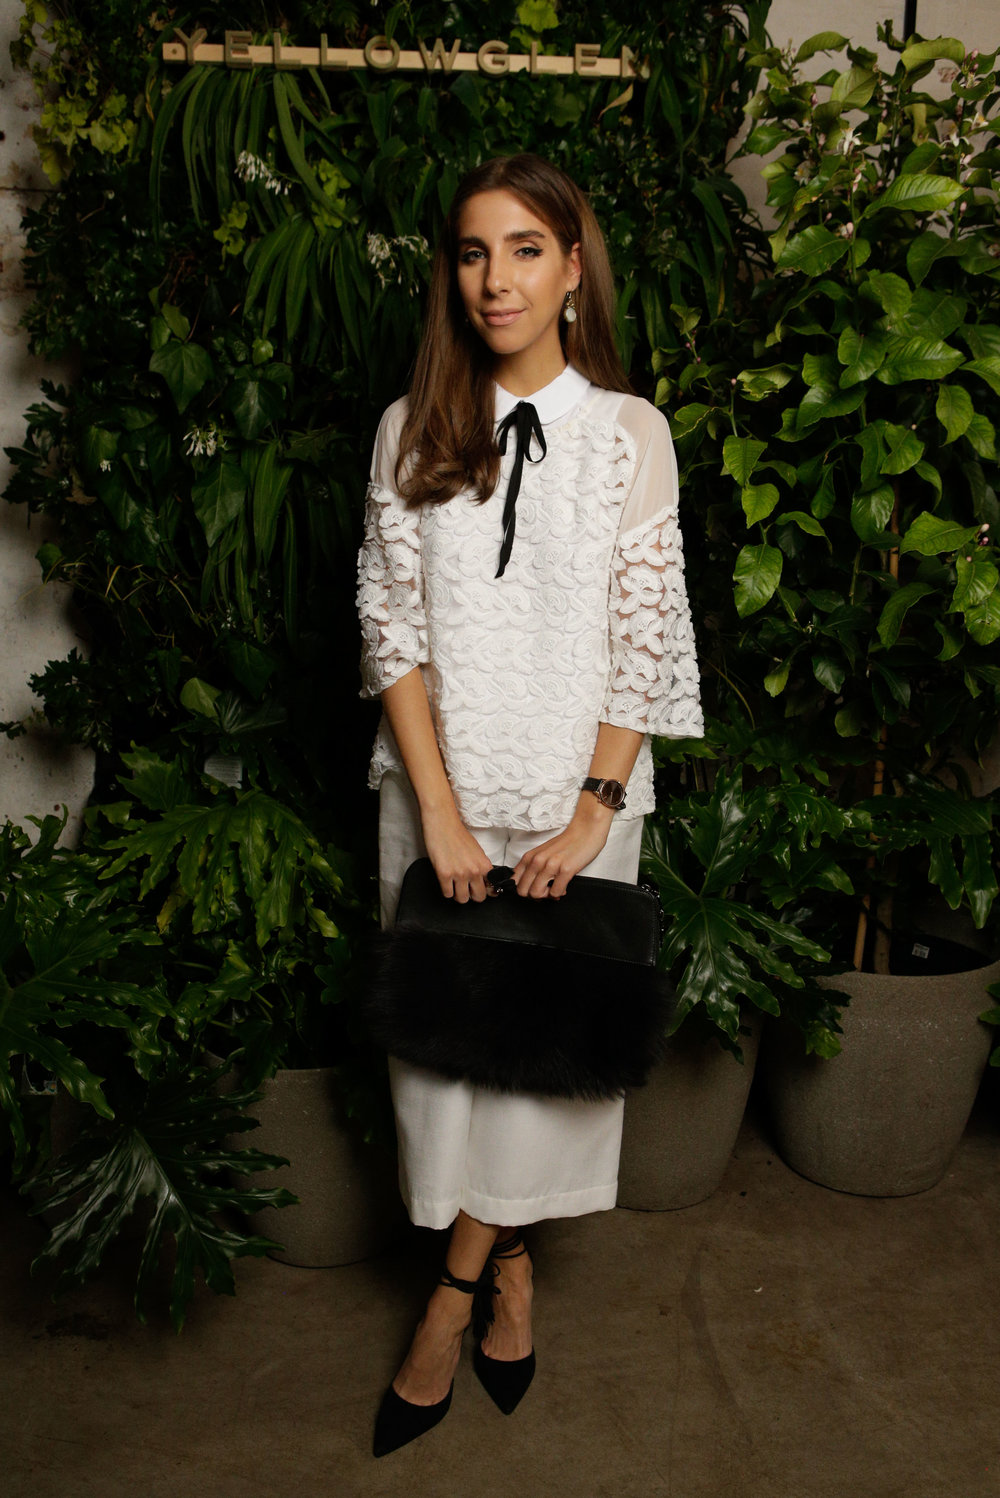 yellowglen-terrace-melbourne-cup-launch-dinner-lana-wilkinson.jpg